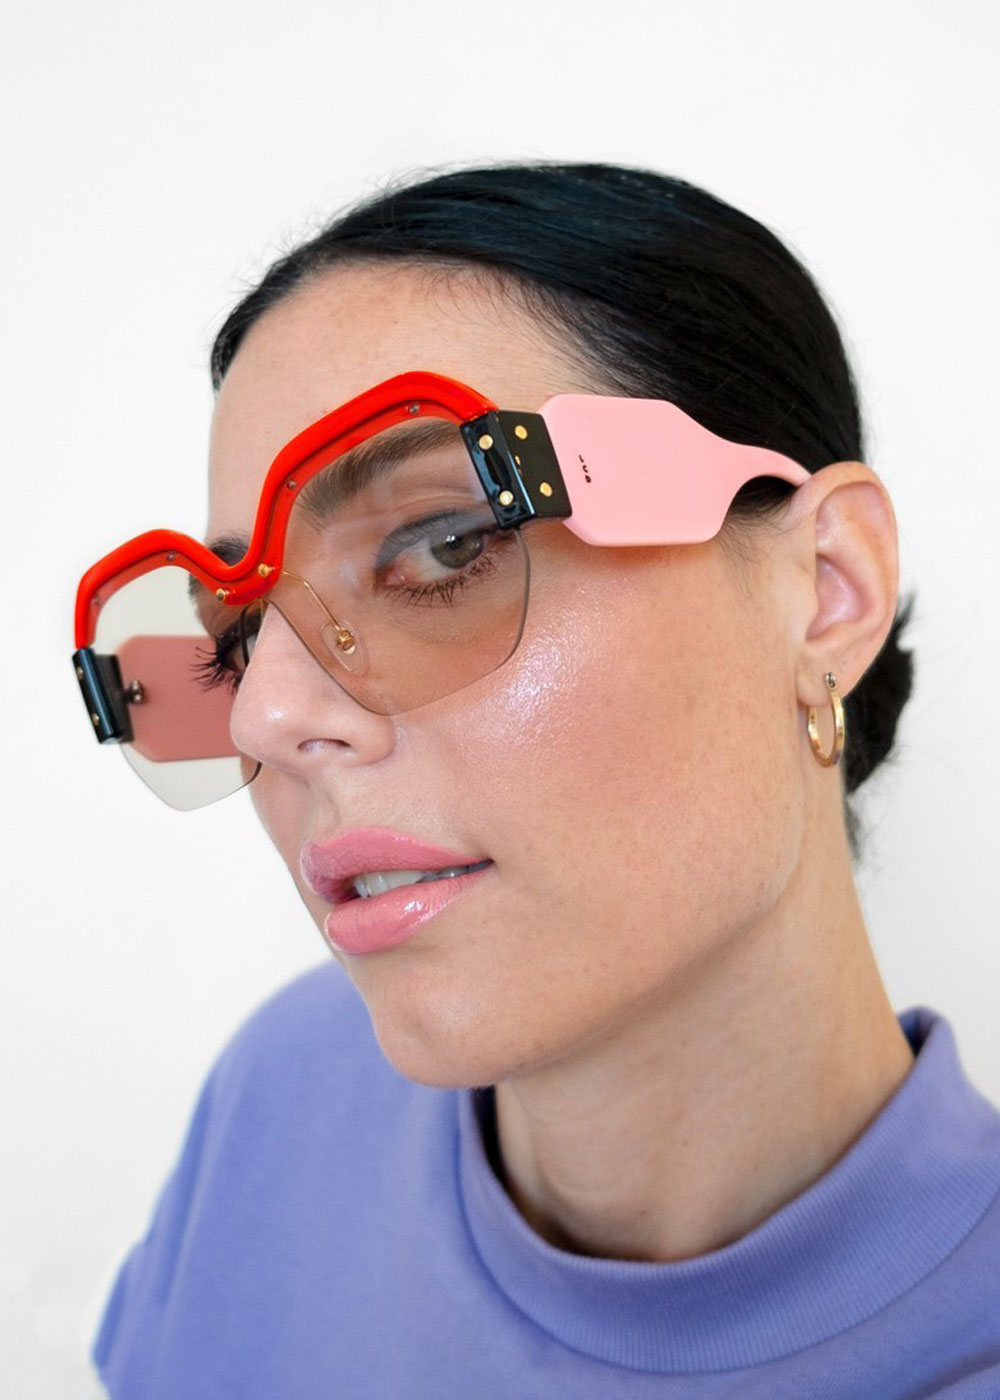 LCDglasses_pink.